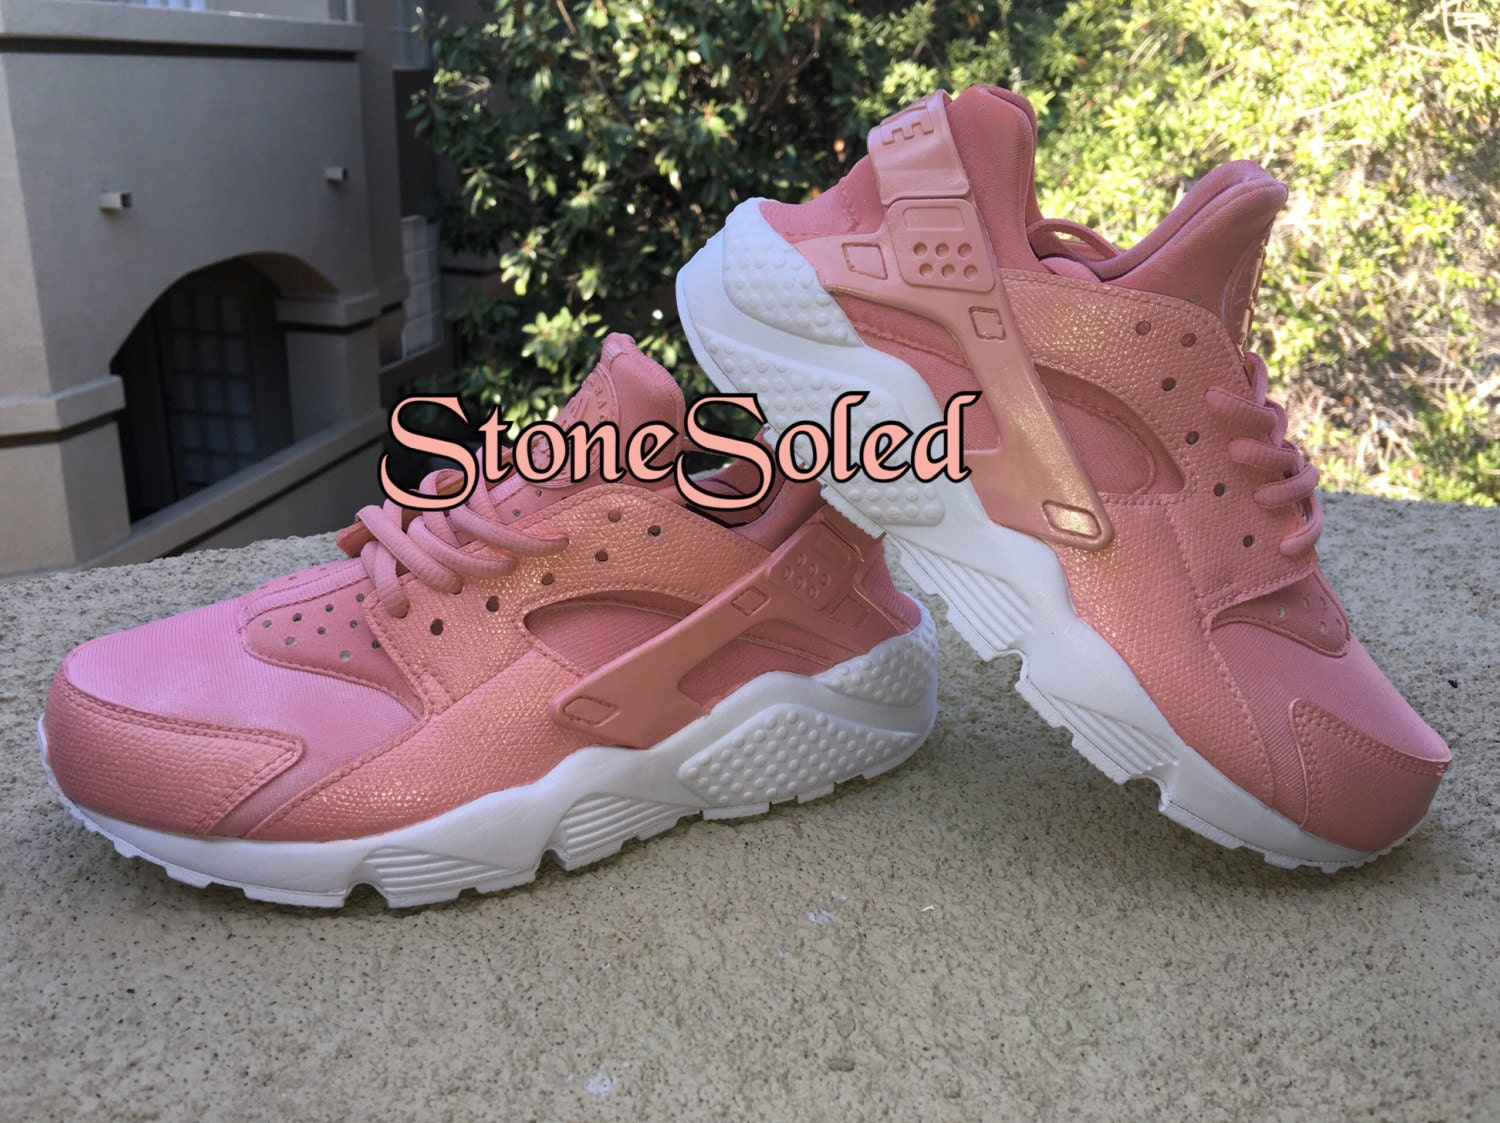 nike air huarache rose gold by stonesoled on etsy. Black Bedroom Furniture Sets. Home Design Ideas